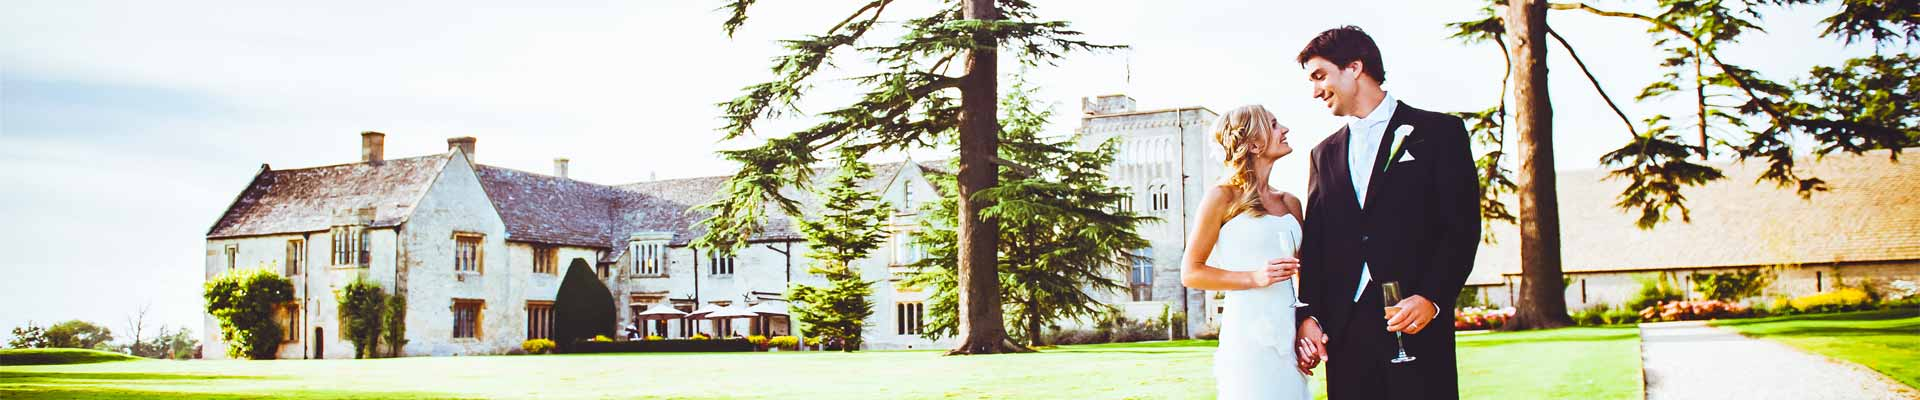 Ellenborough Park Cheltenham the Stately Home to rent in England